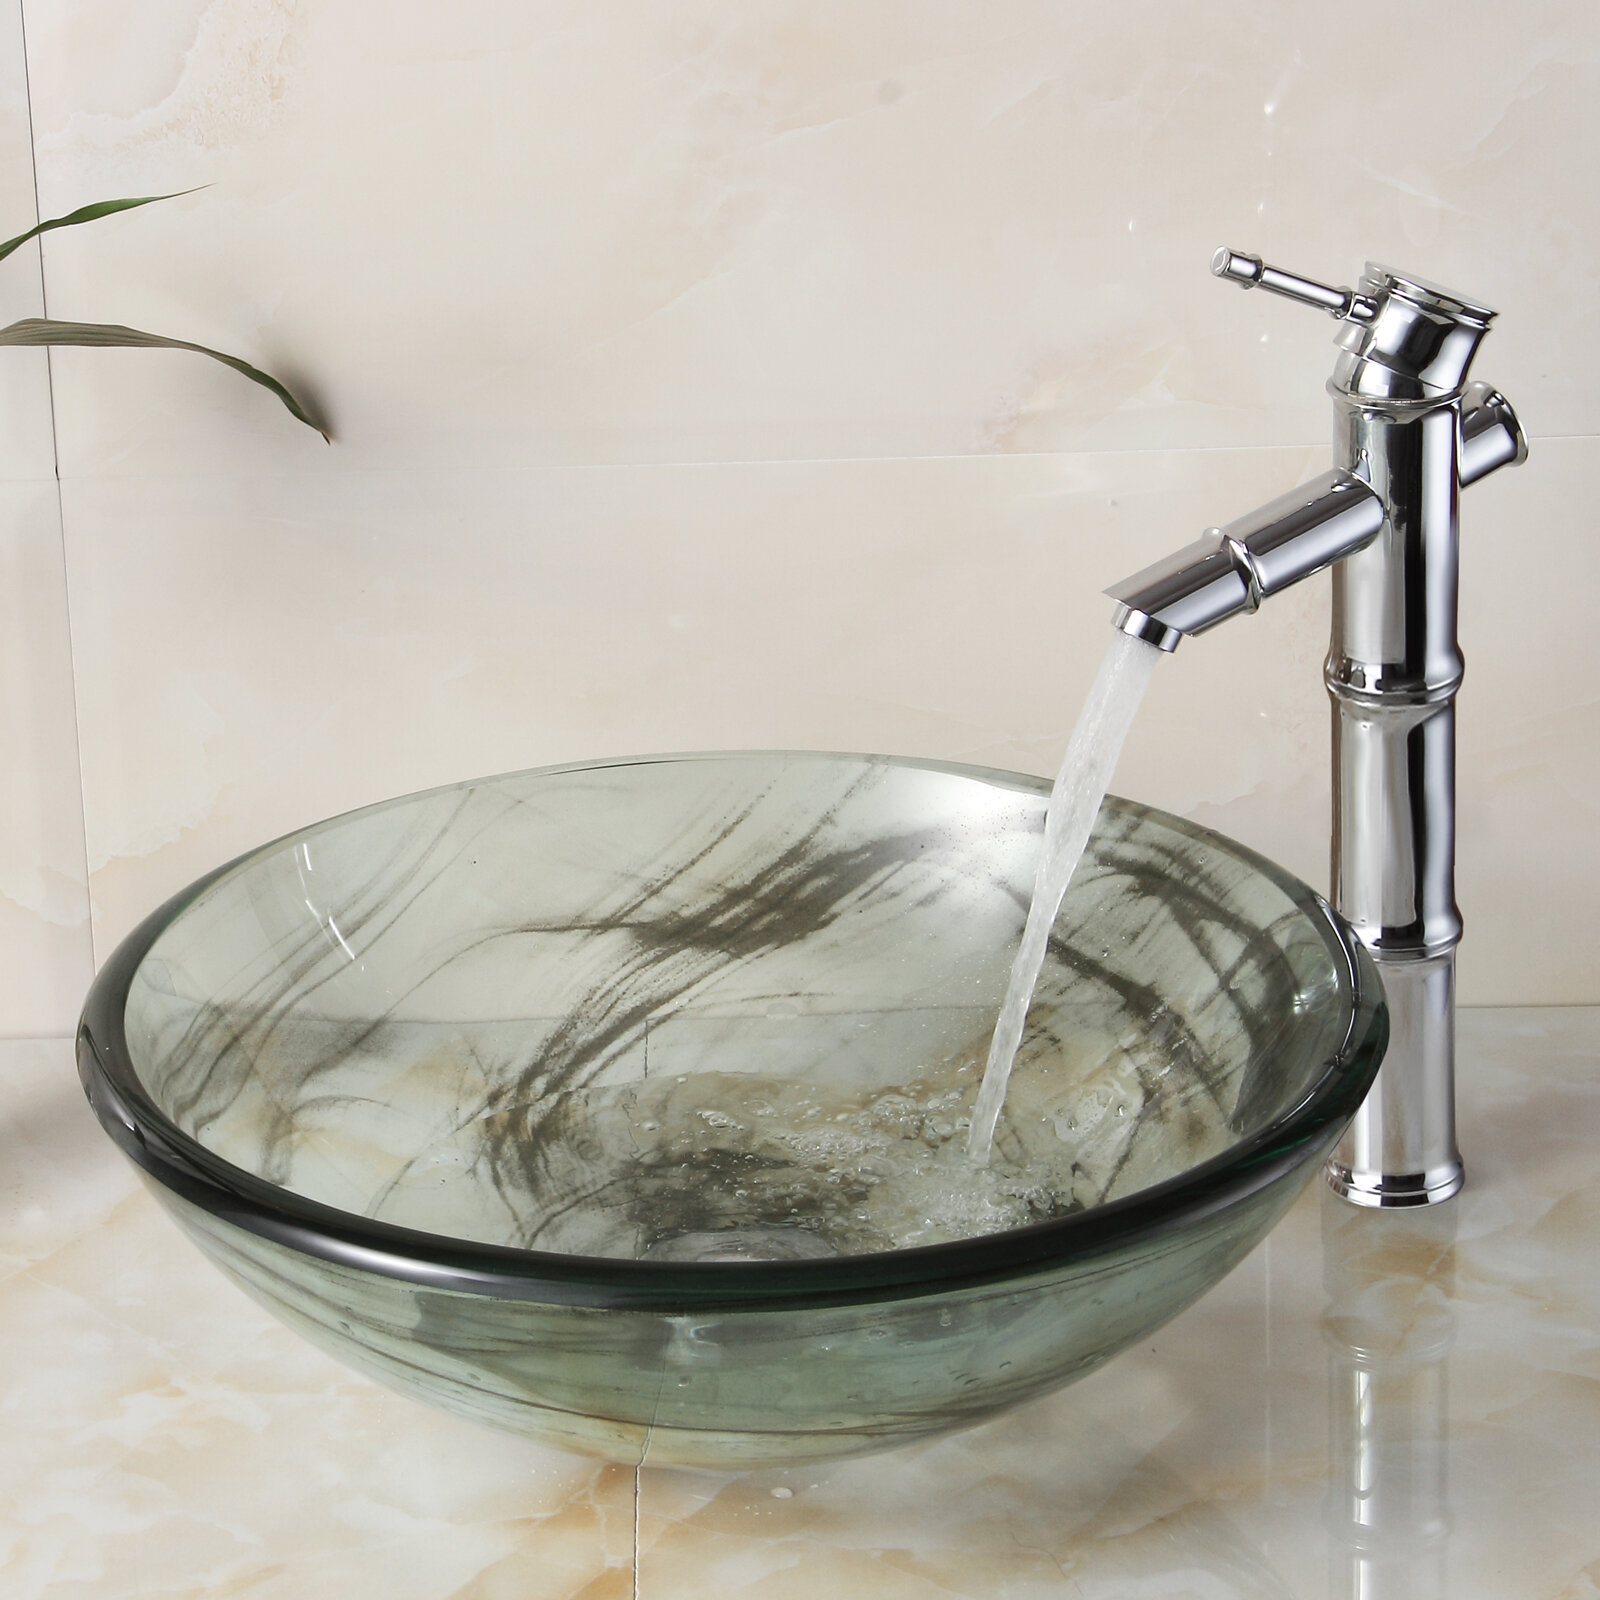 Amazing Double Layered Tempered Glass Circular Vessel Bathroom Sink Interior Design Ideas Clesiryabchikinfo